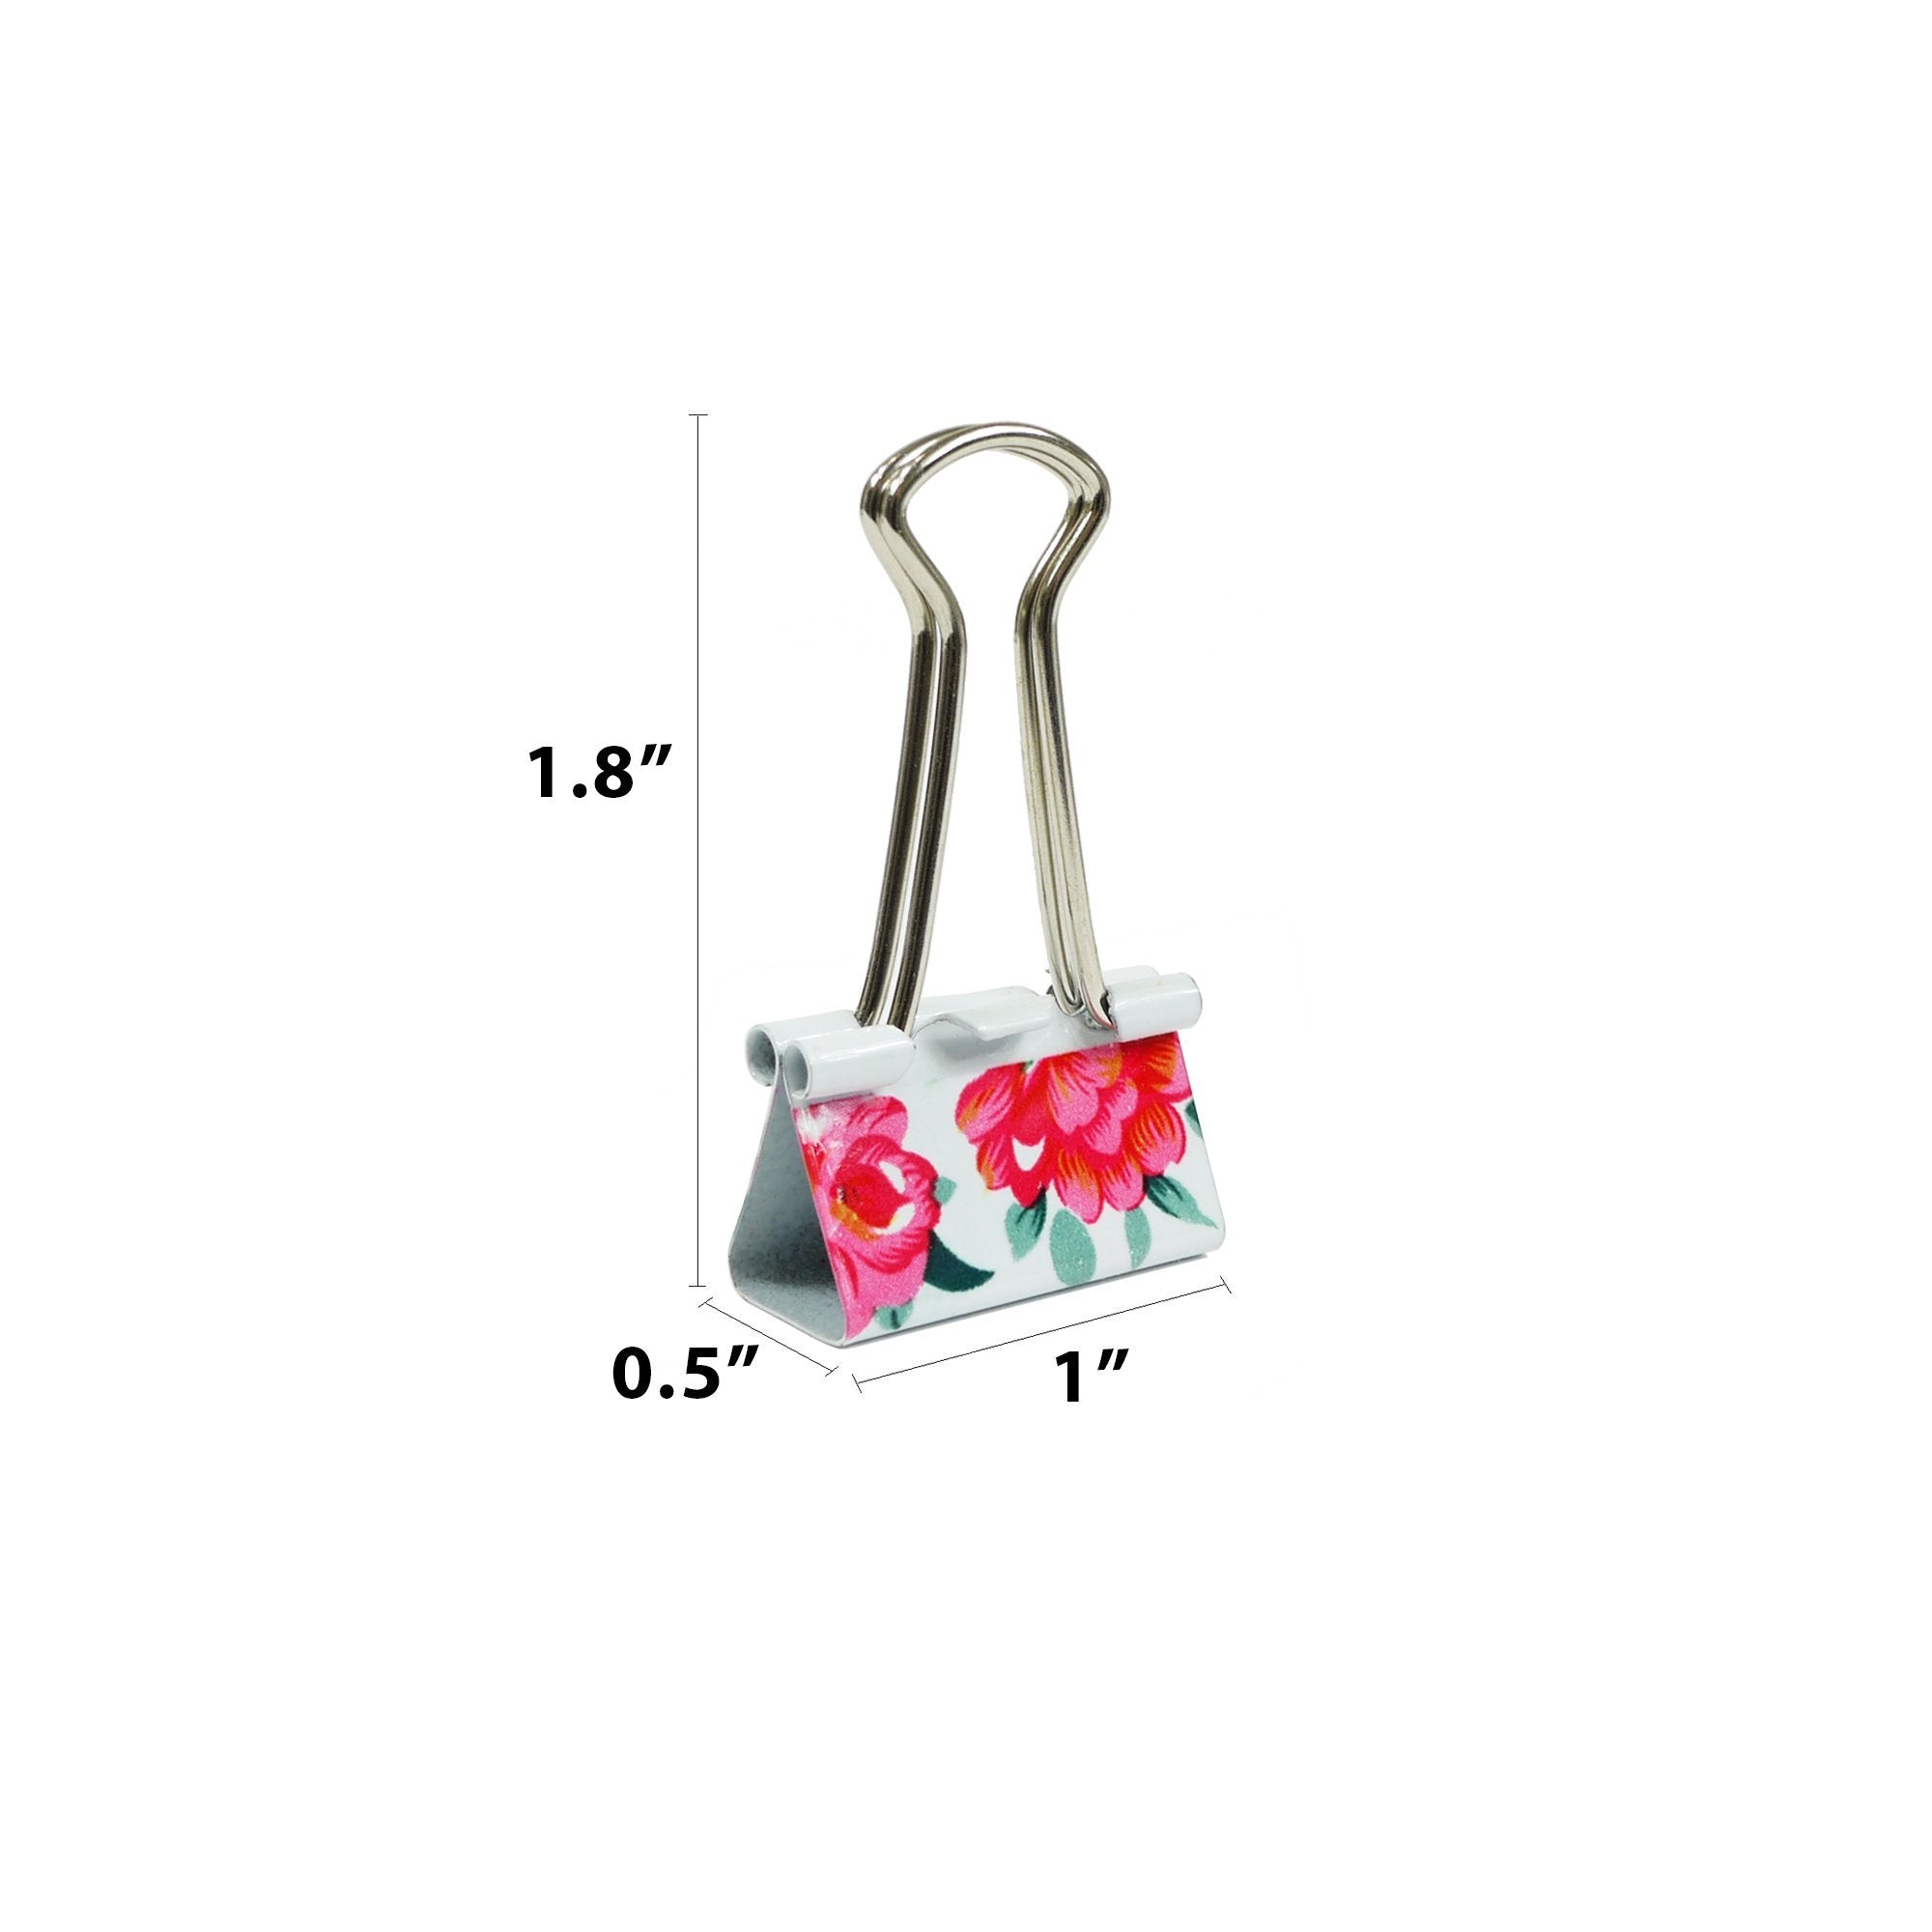 Cute Decorative Binder Clips - Best for Home and Office